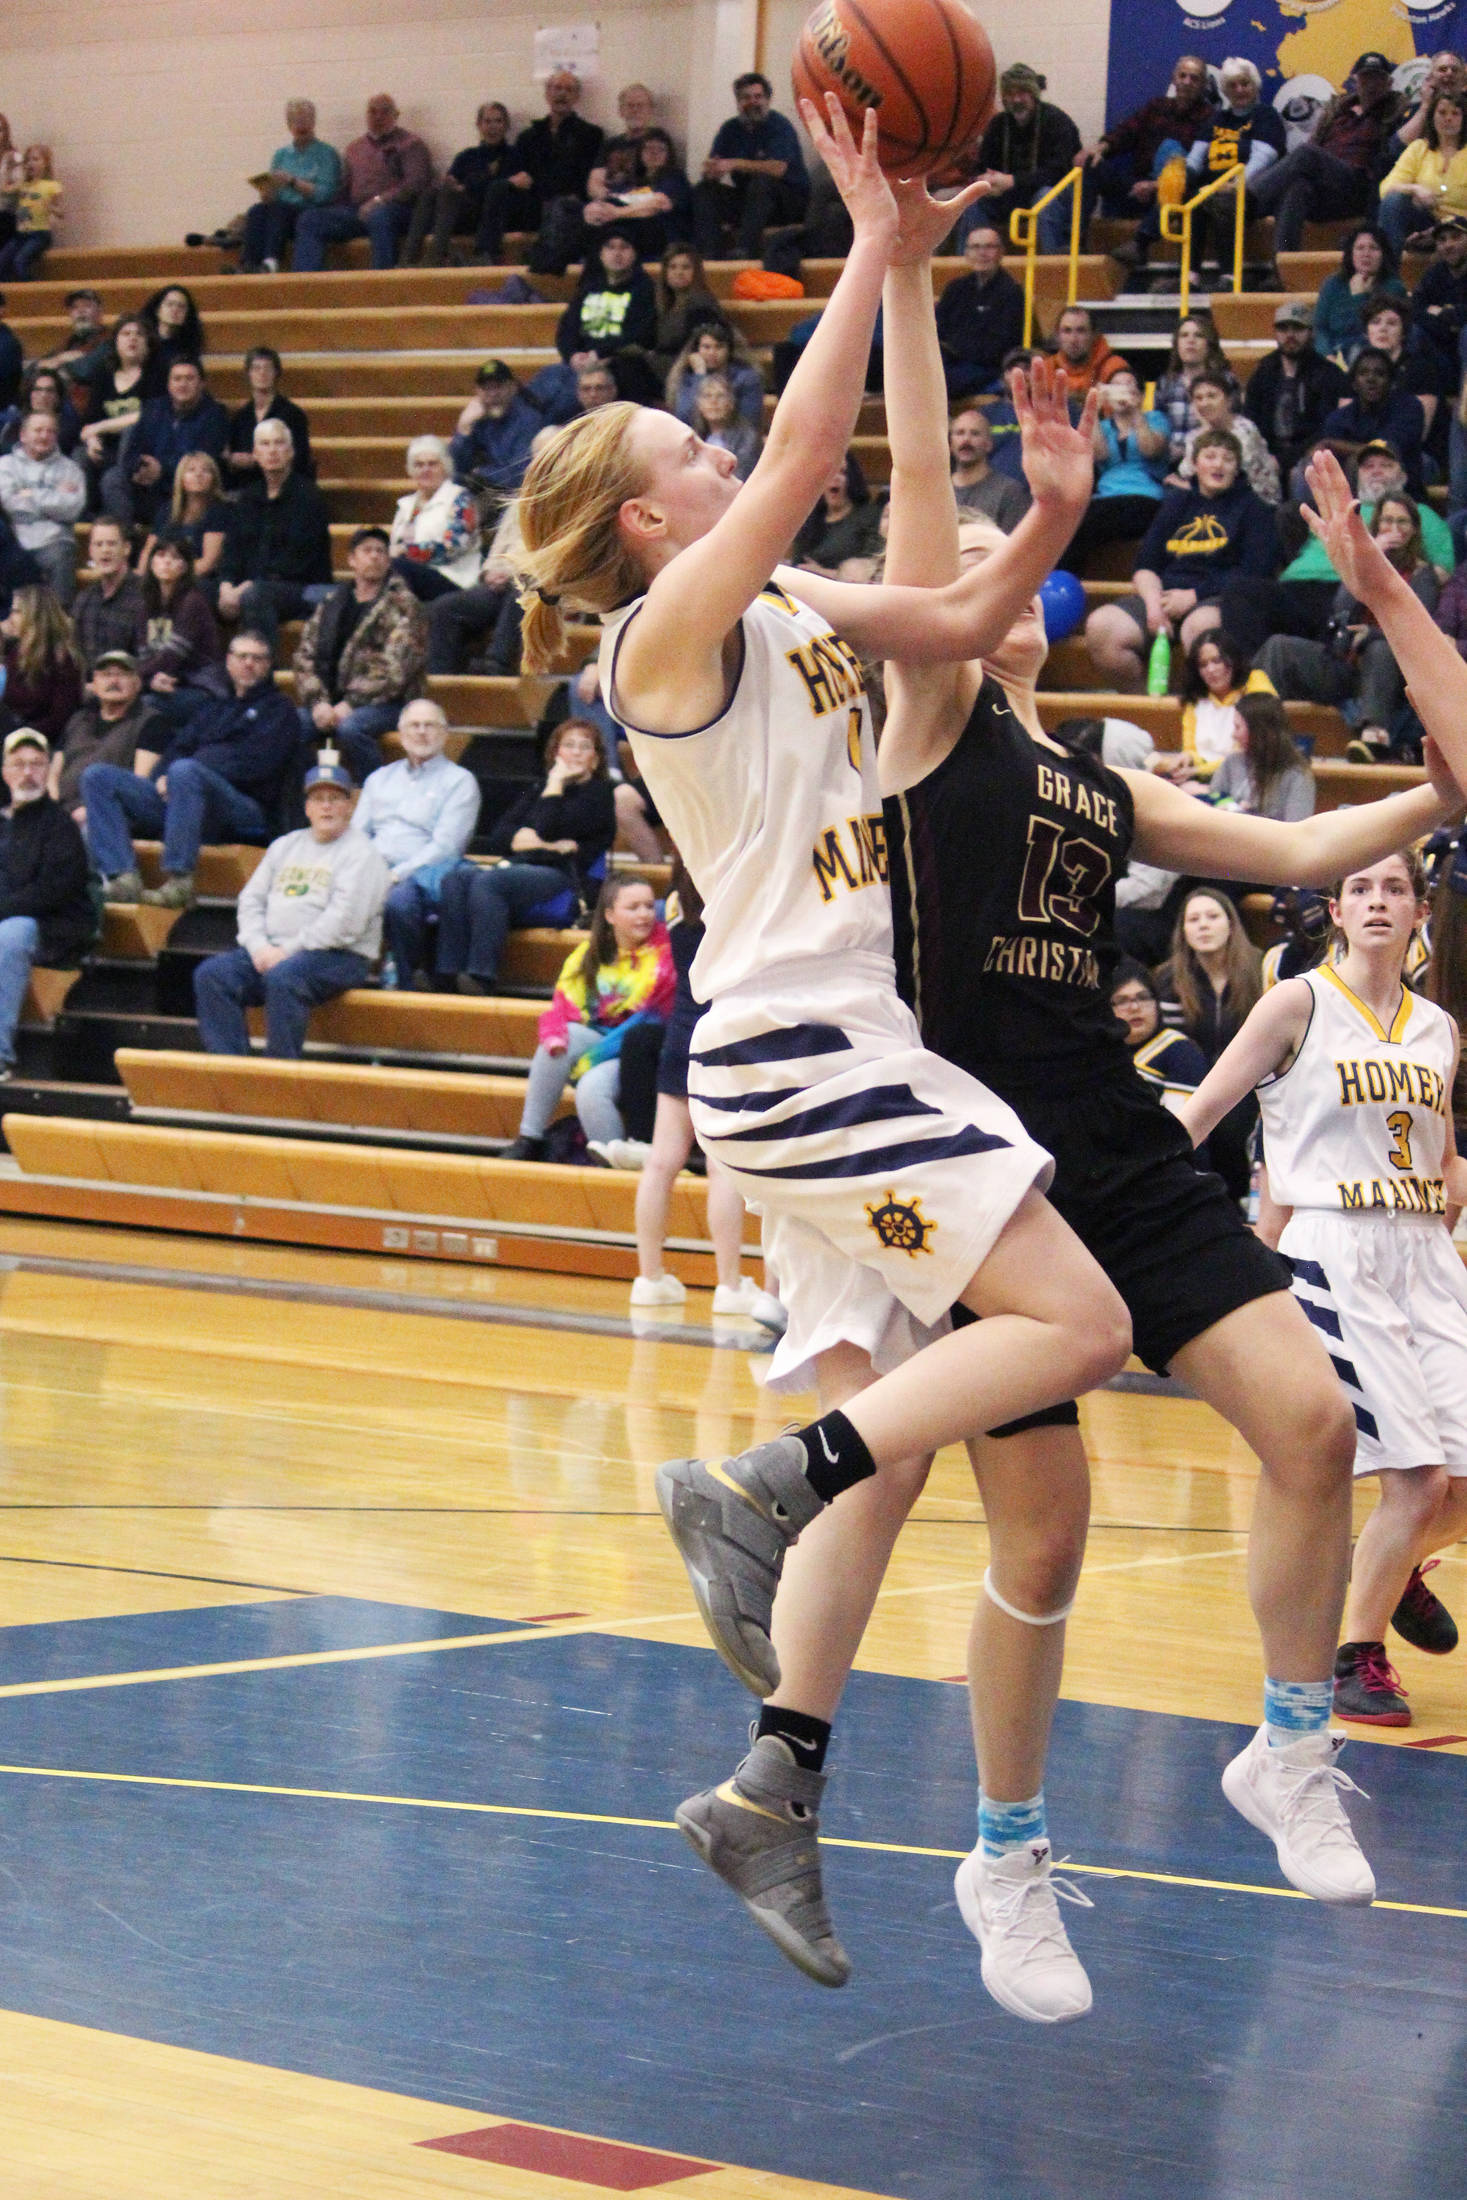 Homer's Kelli Bishop takes a shot on the Grace Christian School basket during a Friday, Feb. 22, 2019 game in Homer, Alaska. Grace is one of three private school teams in Region 3A basketball. (Photo by Megan Pacer/Homer News)